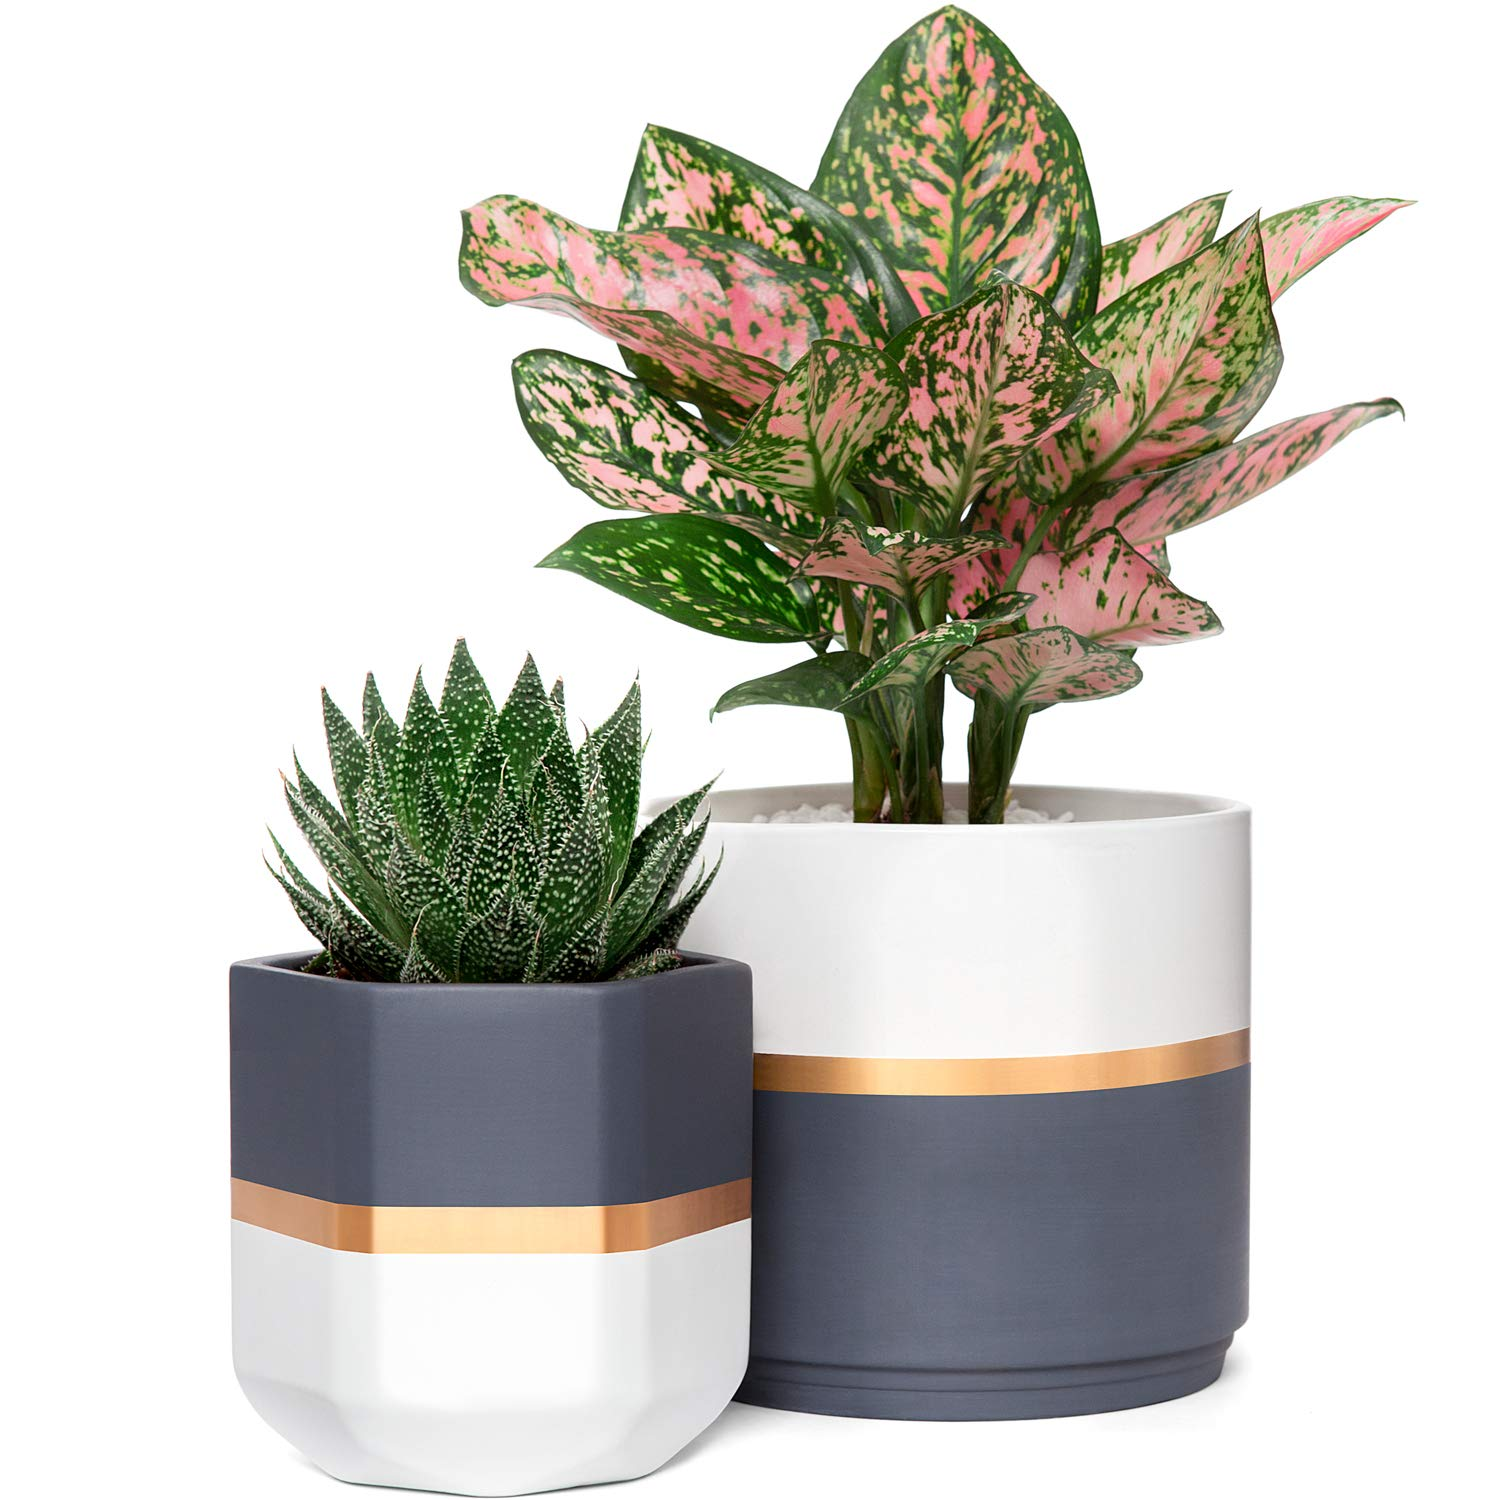 Mkono Ceramic Flower Pot Modern Garden Planters Indoor Outdoor Geometric Plant Containers with Drainage, Gold and Grey Detailing for All House Plants, Herbs, Flowers, Set of 2 Plants NOT Included